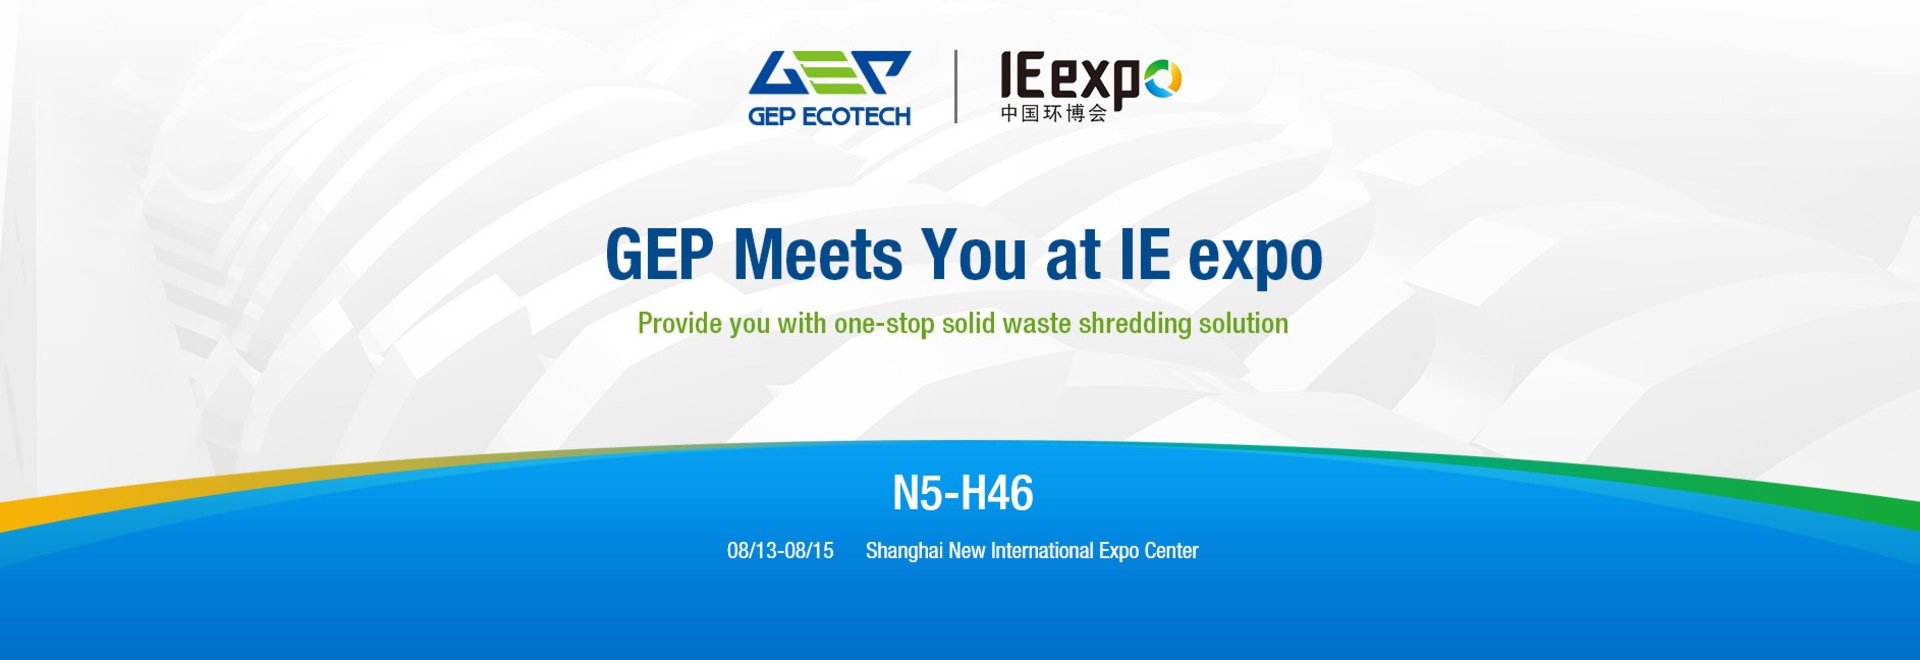 IE Expo 2020 Shanghai, See You in August